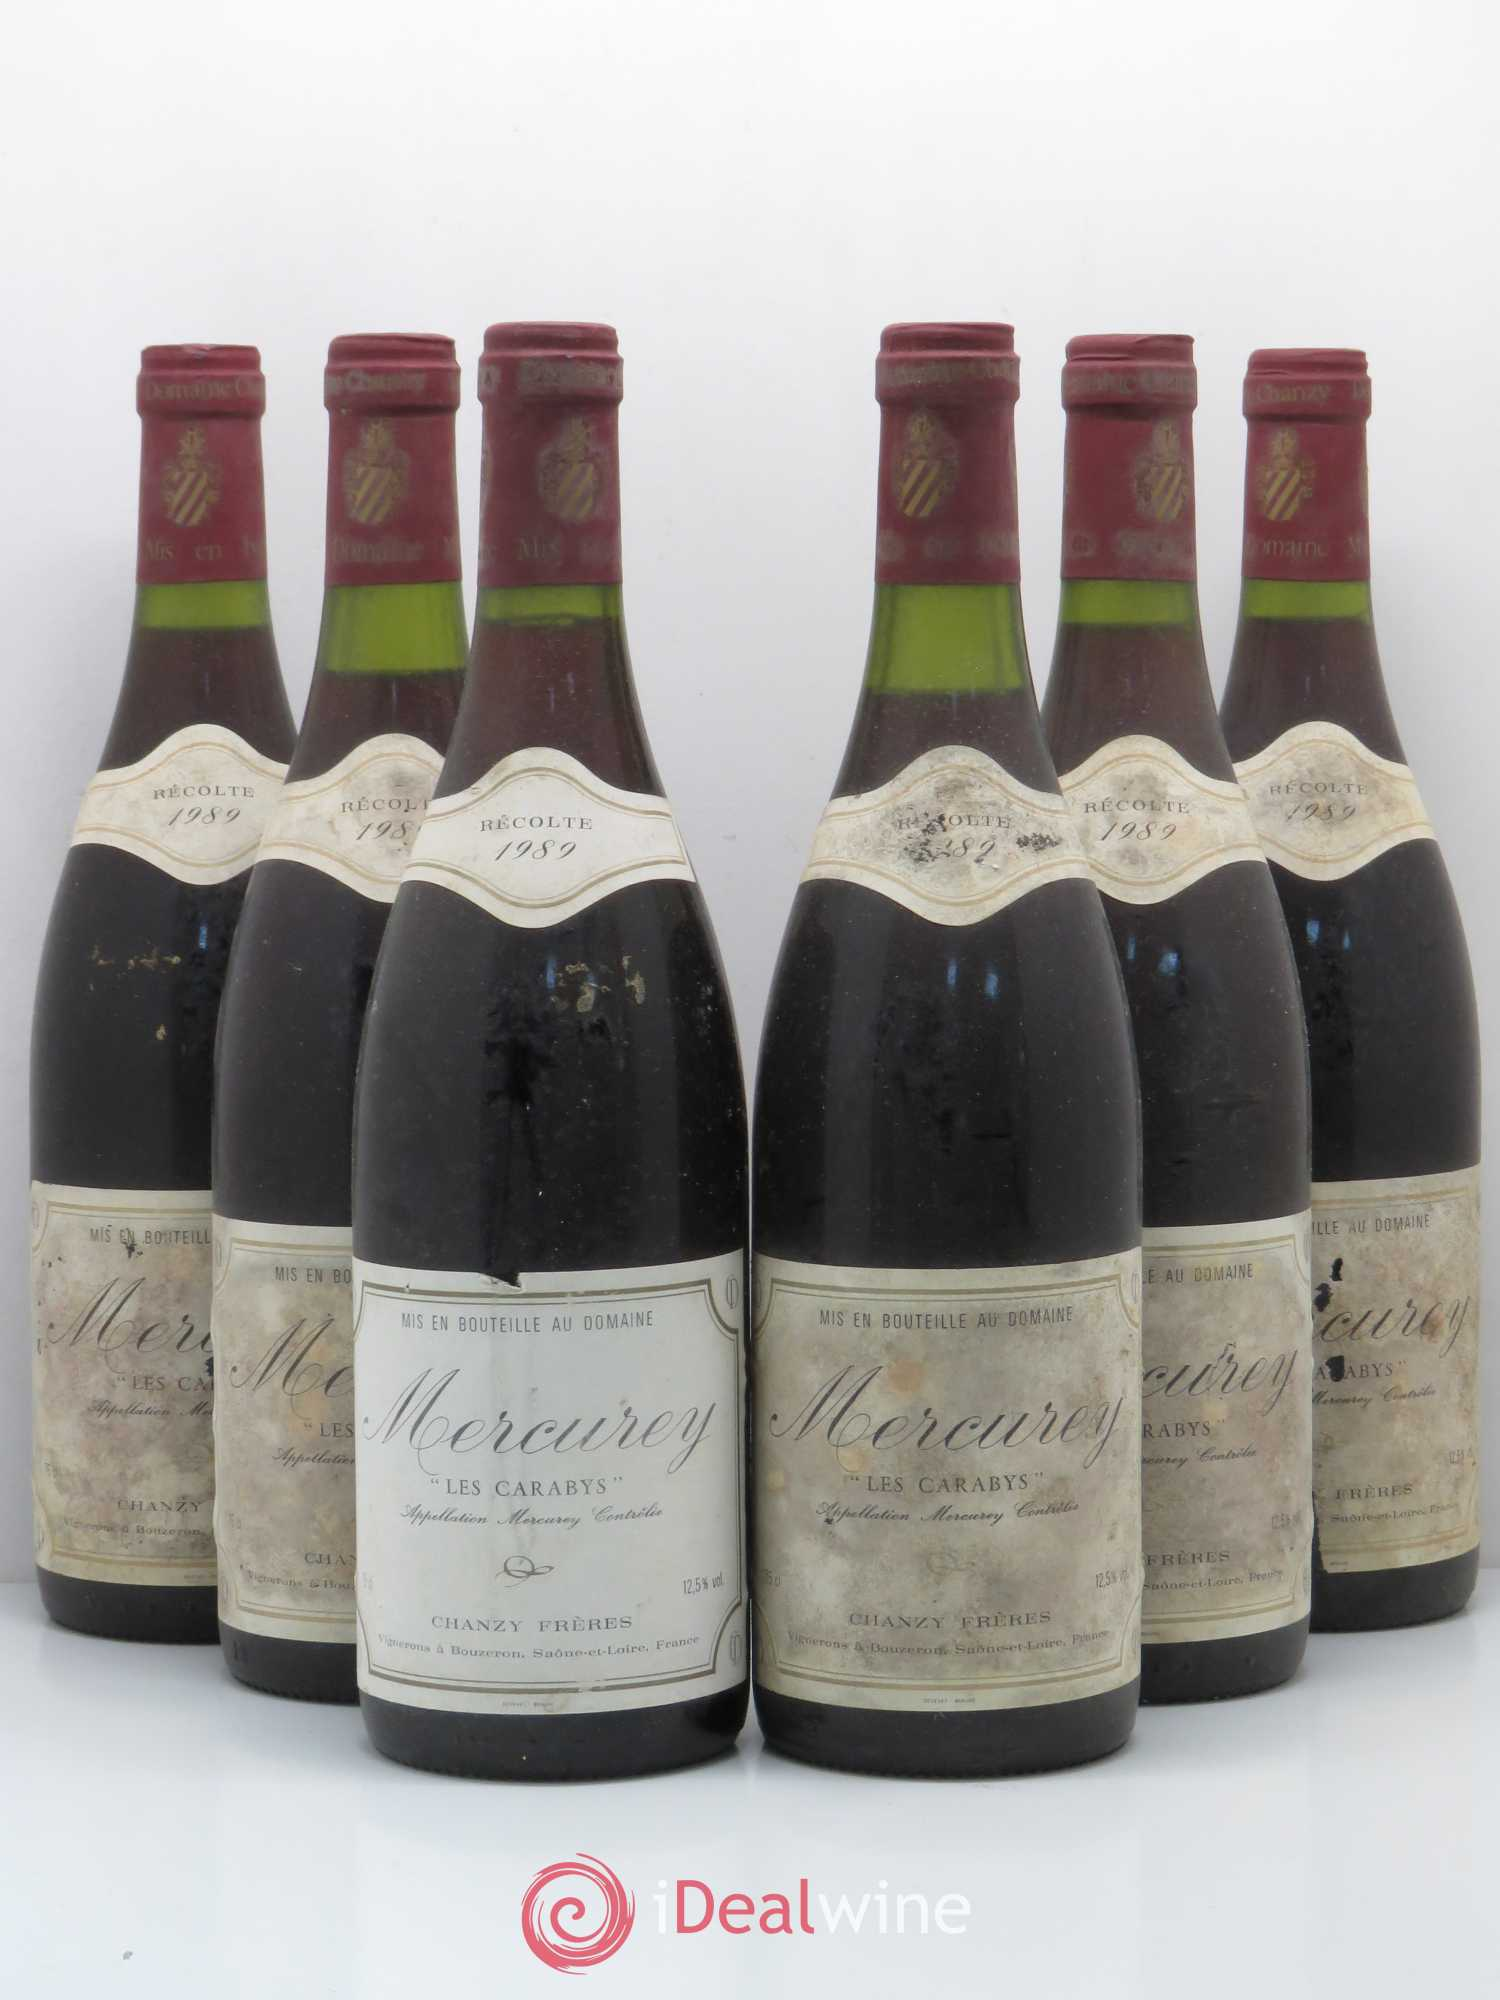 Mercurey Les Carabys Chanzy Frères (no reserve) 1989 - Lot of 6 Bottles